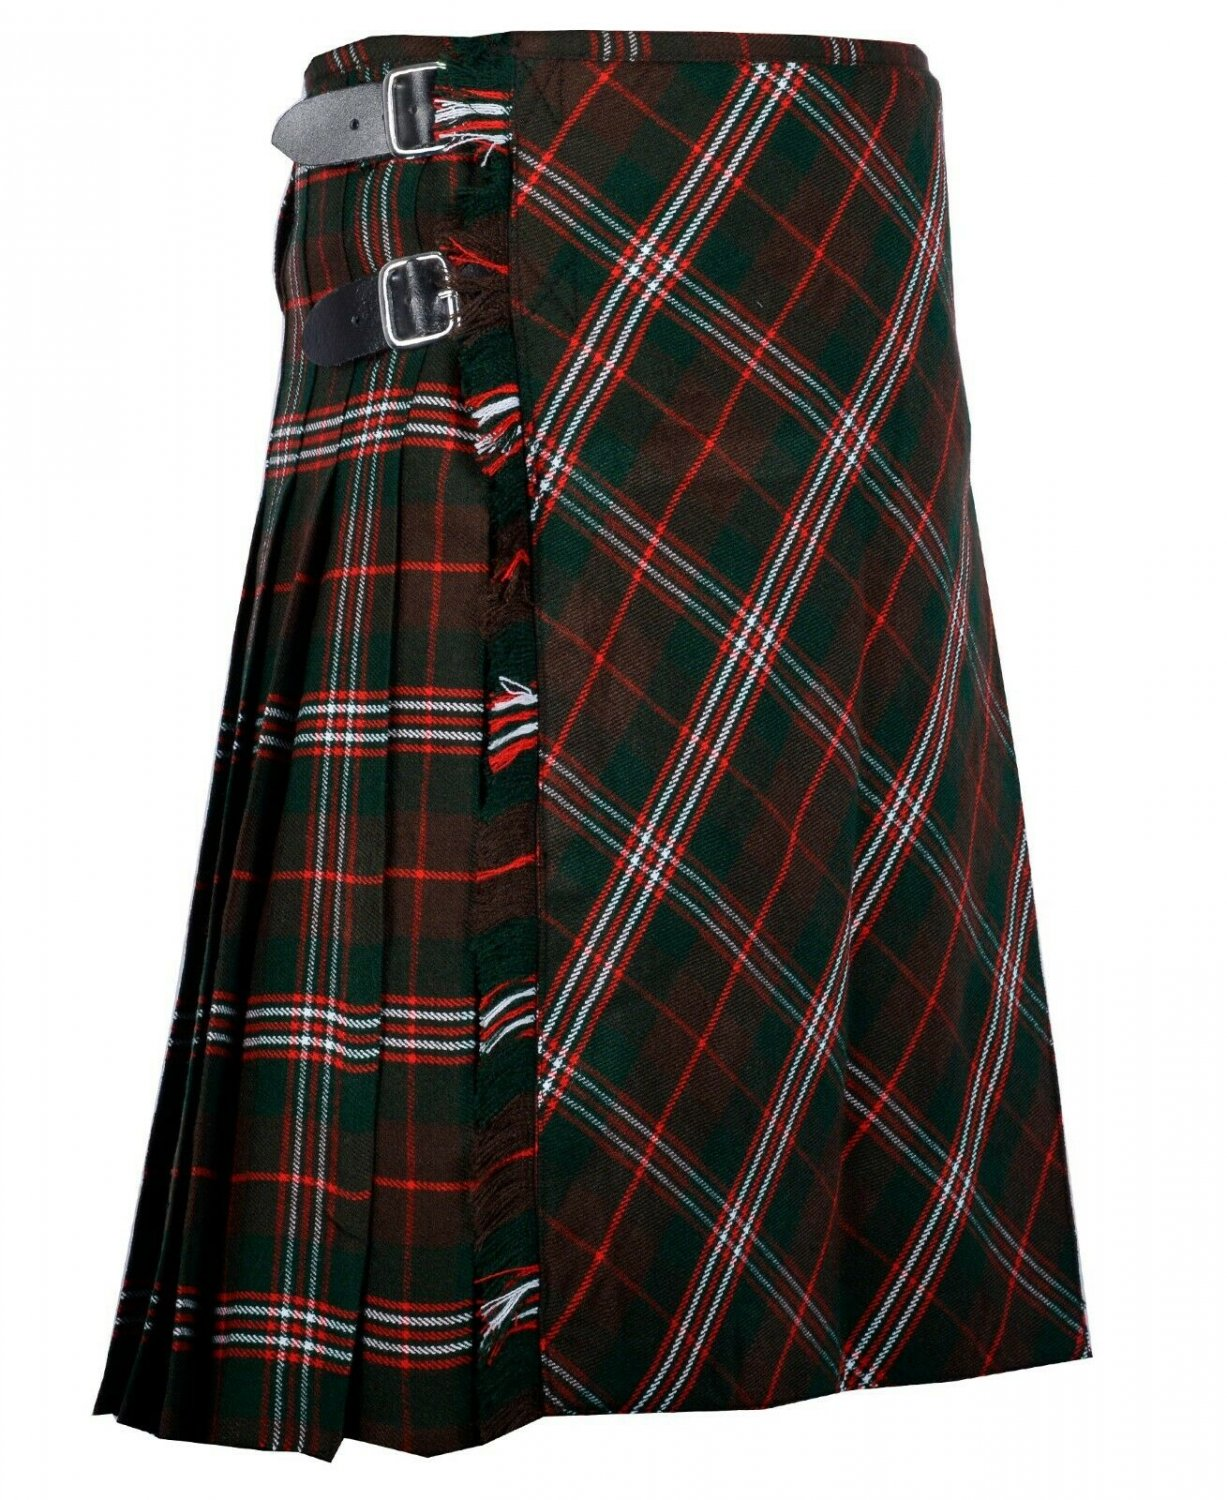 58 inches waist Bias Apron Traditional 5 Yard Scottish Kilt for Men - Scott Hunting Tartan